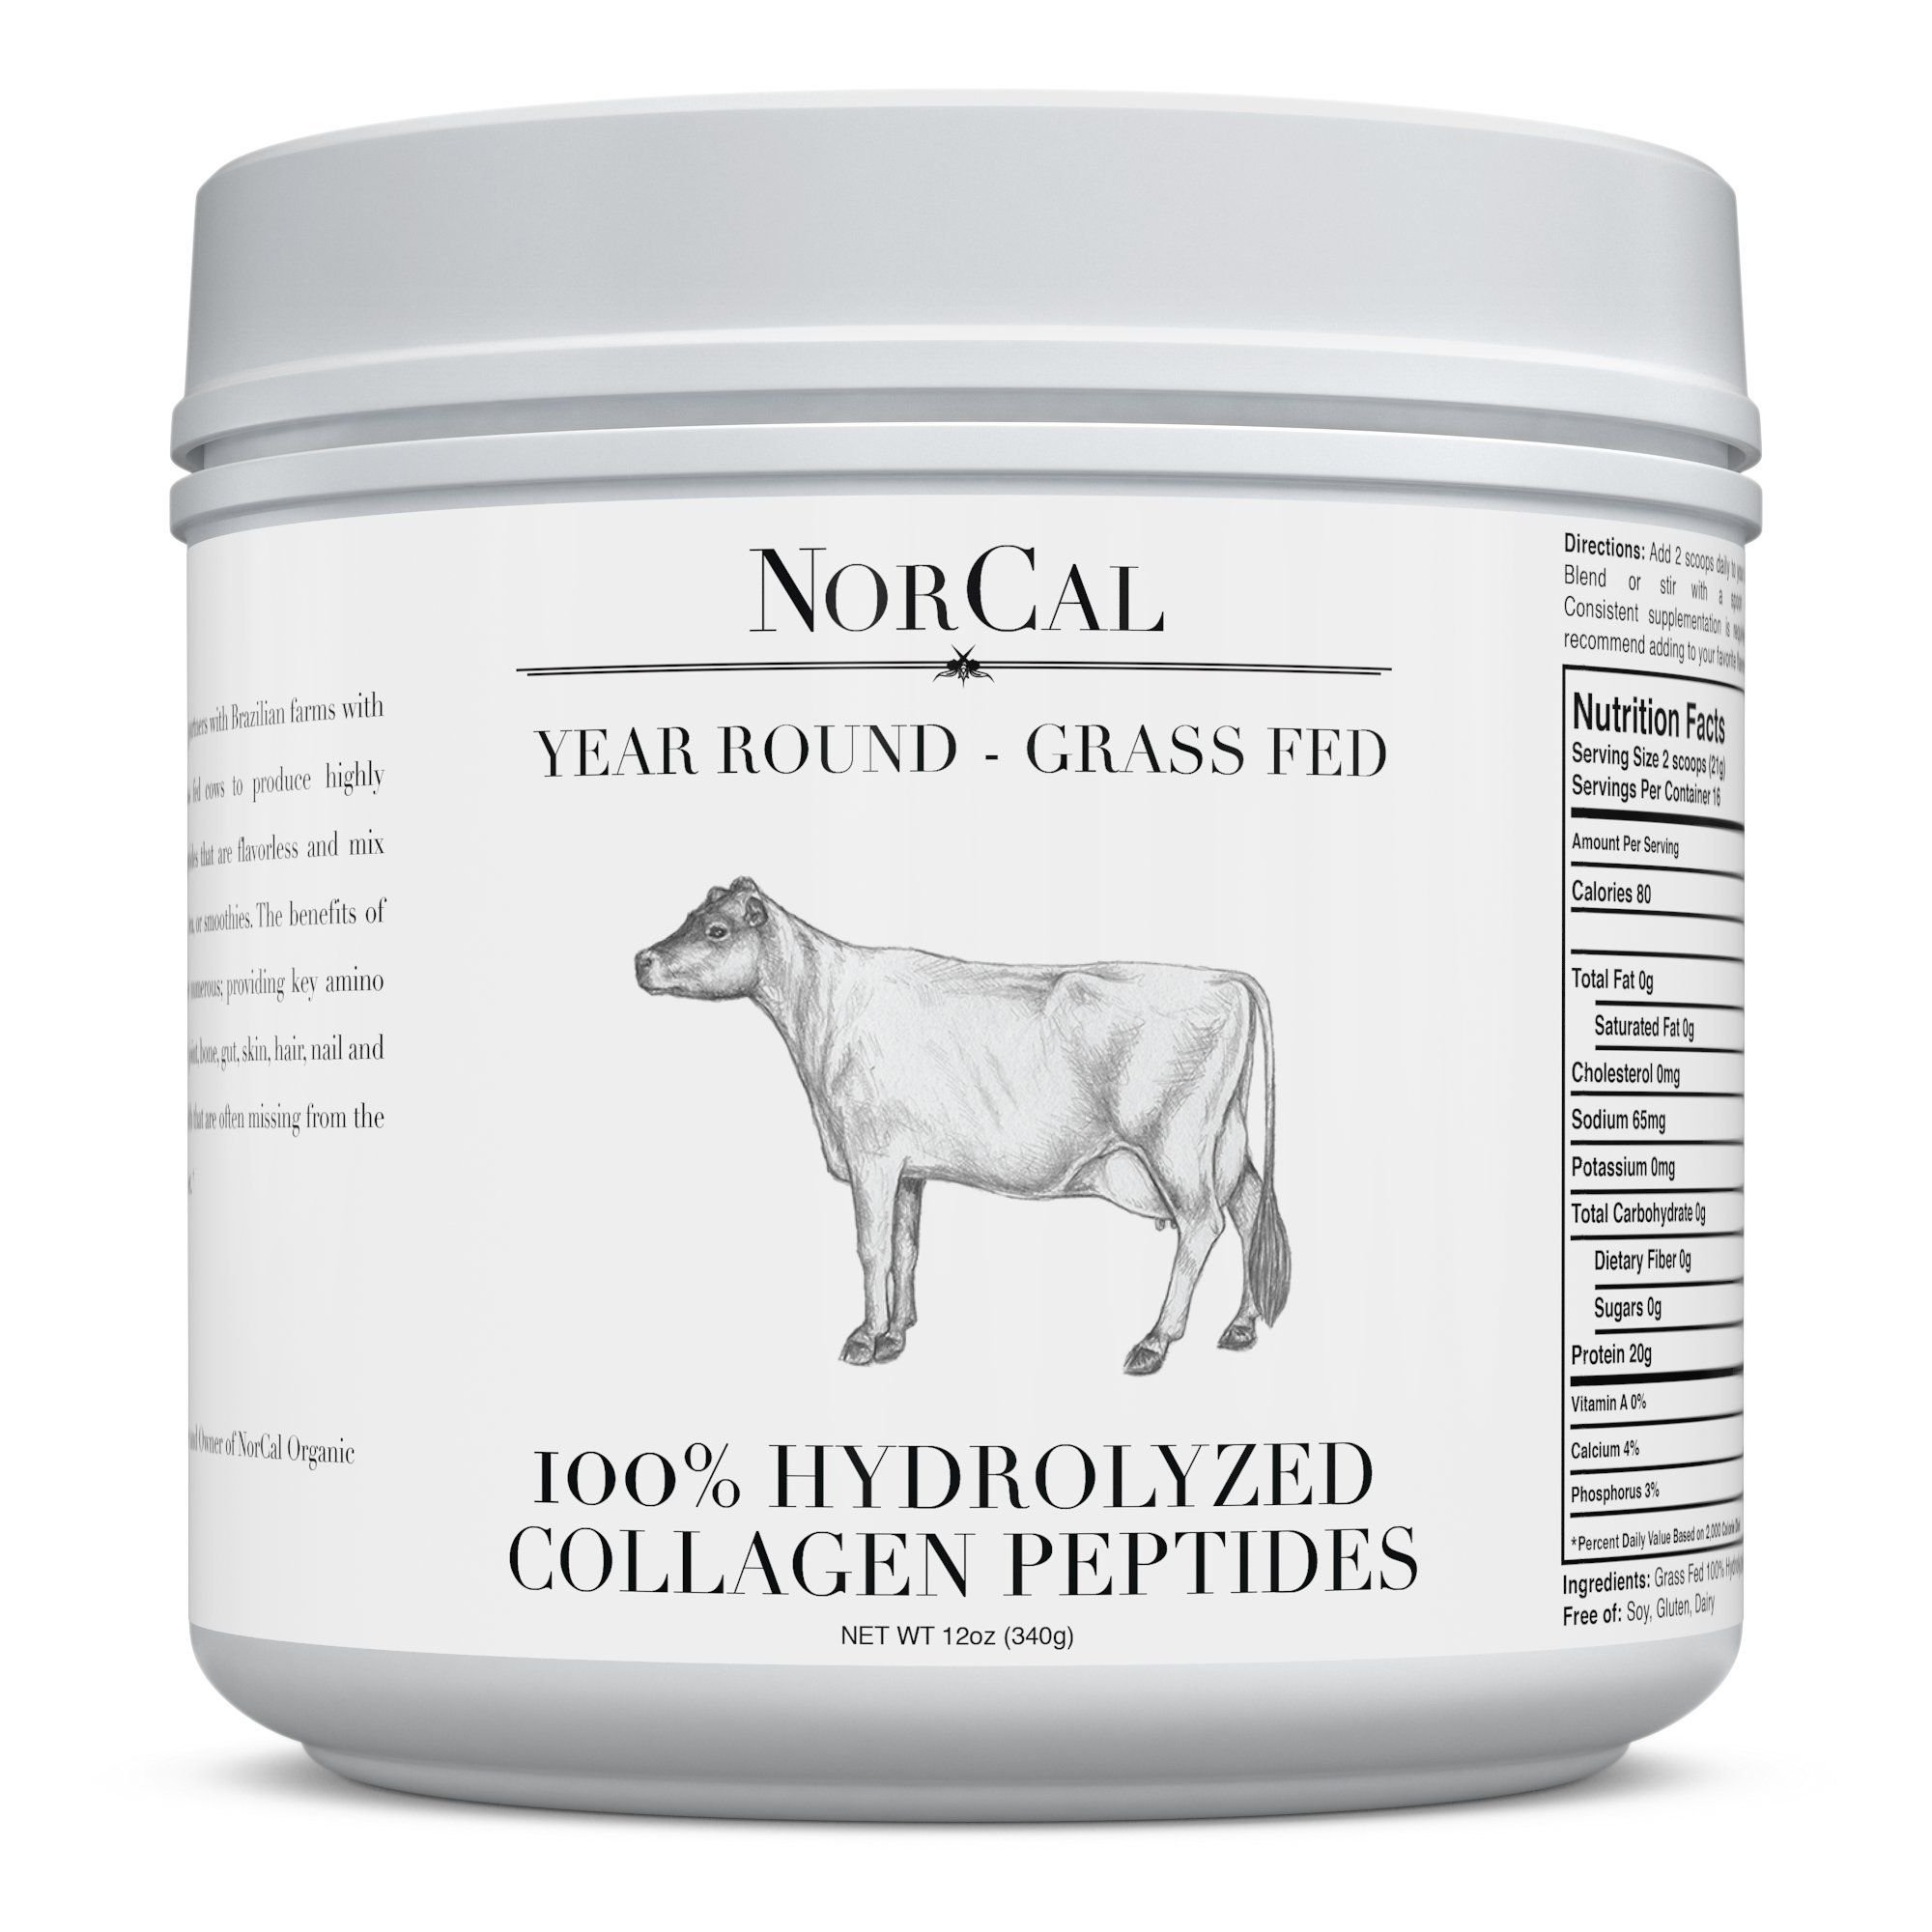 NorCal Collagen - Supplements Protein Production for Strong Healthy Bones, Joints, Cartilage & Tendons